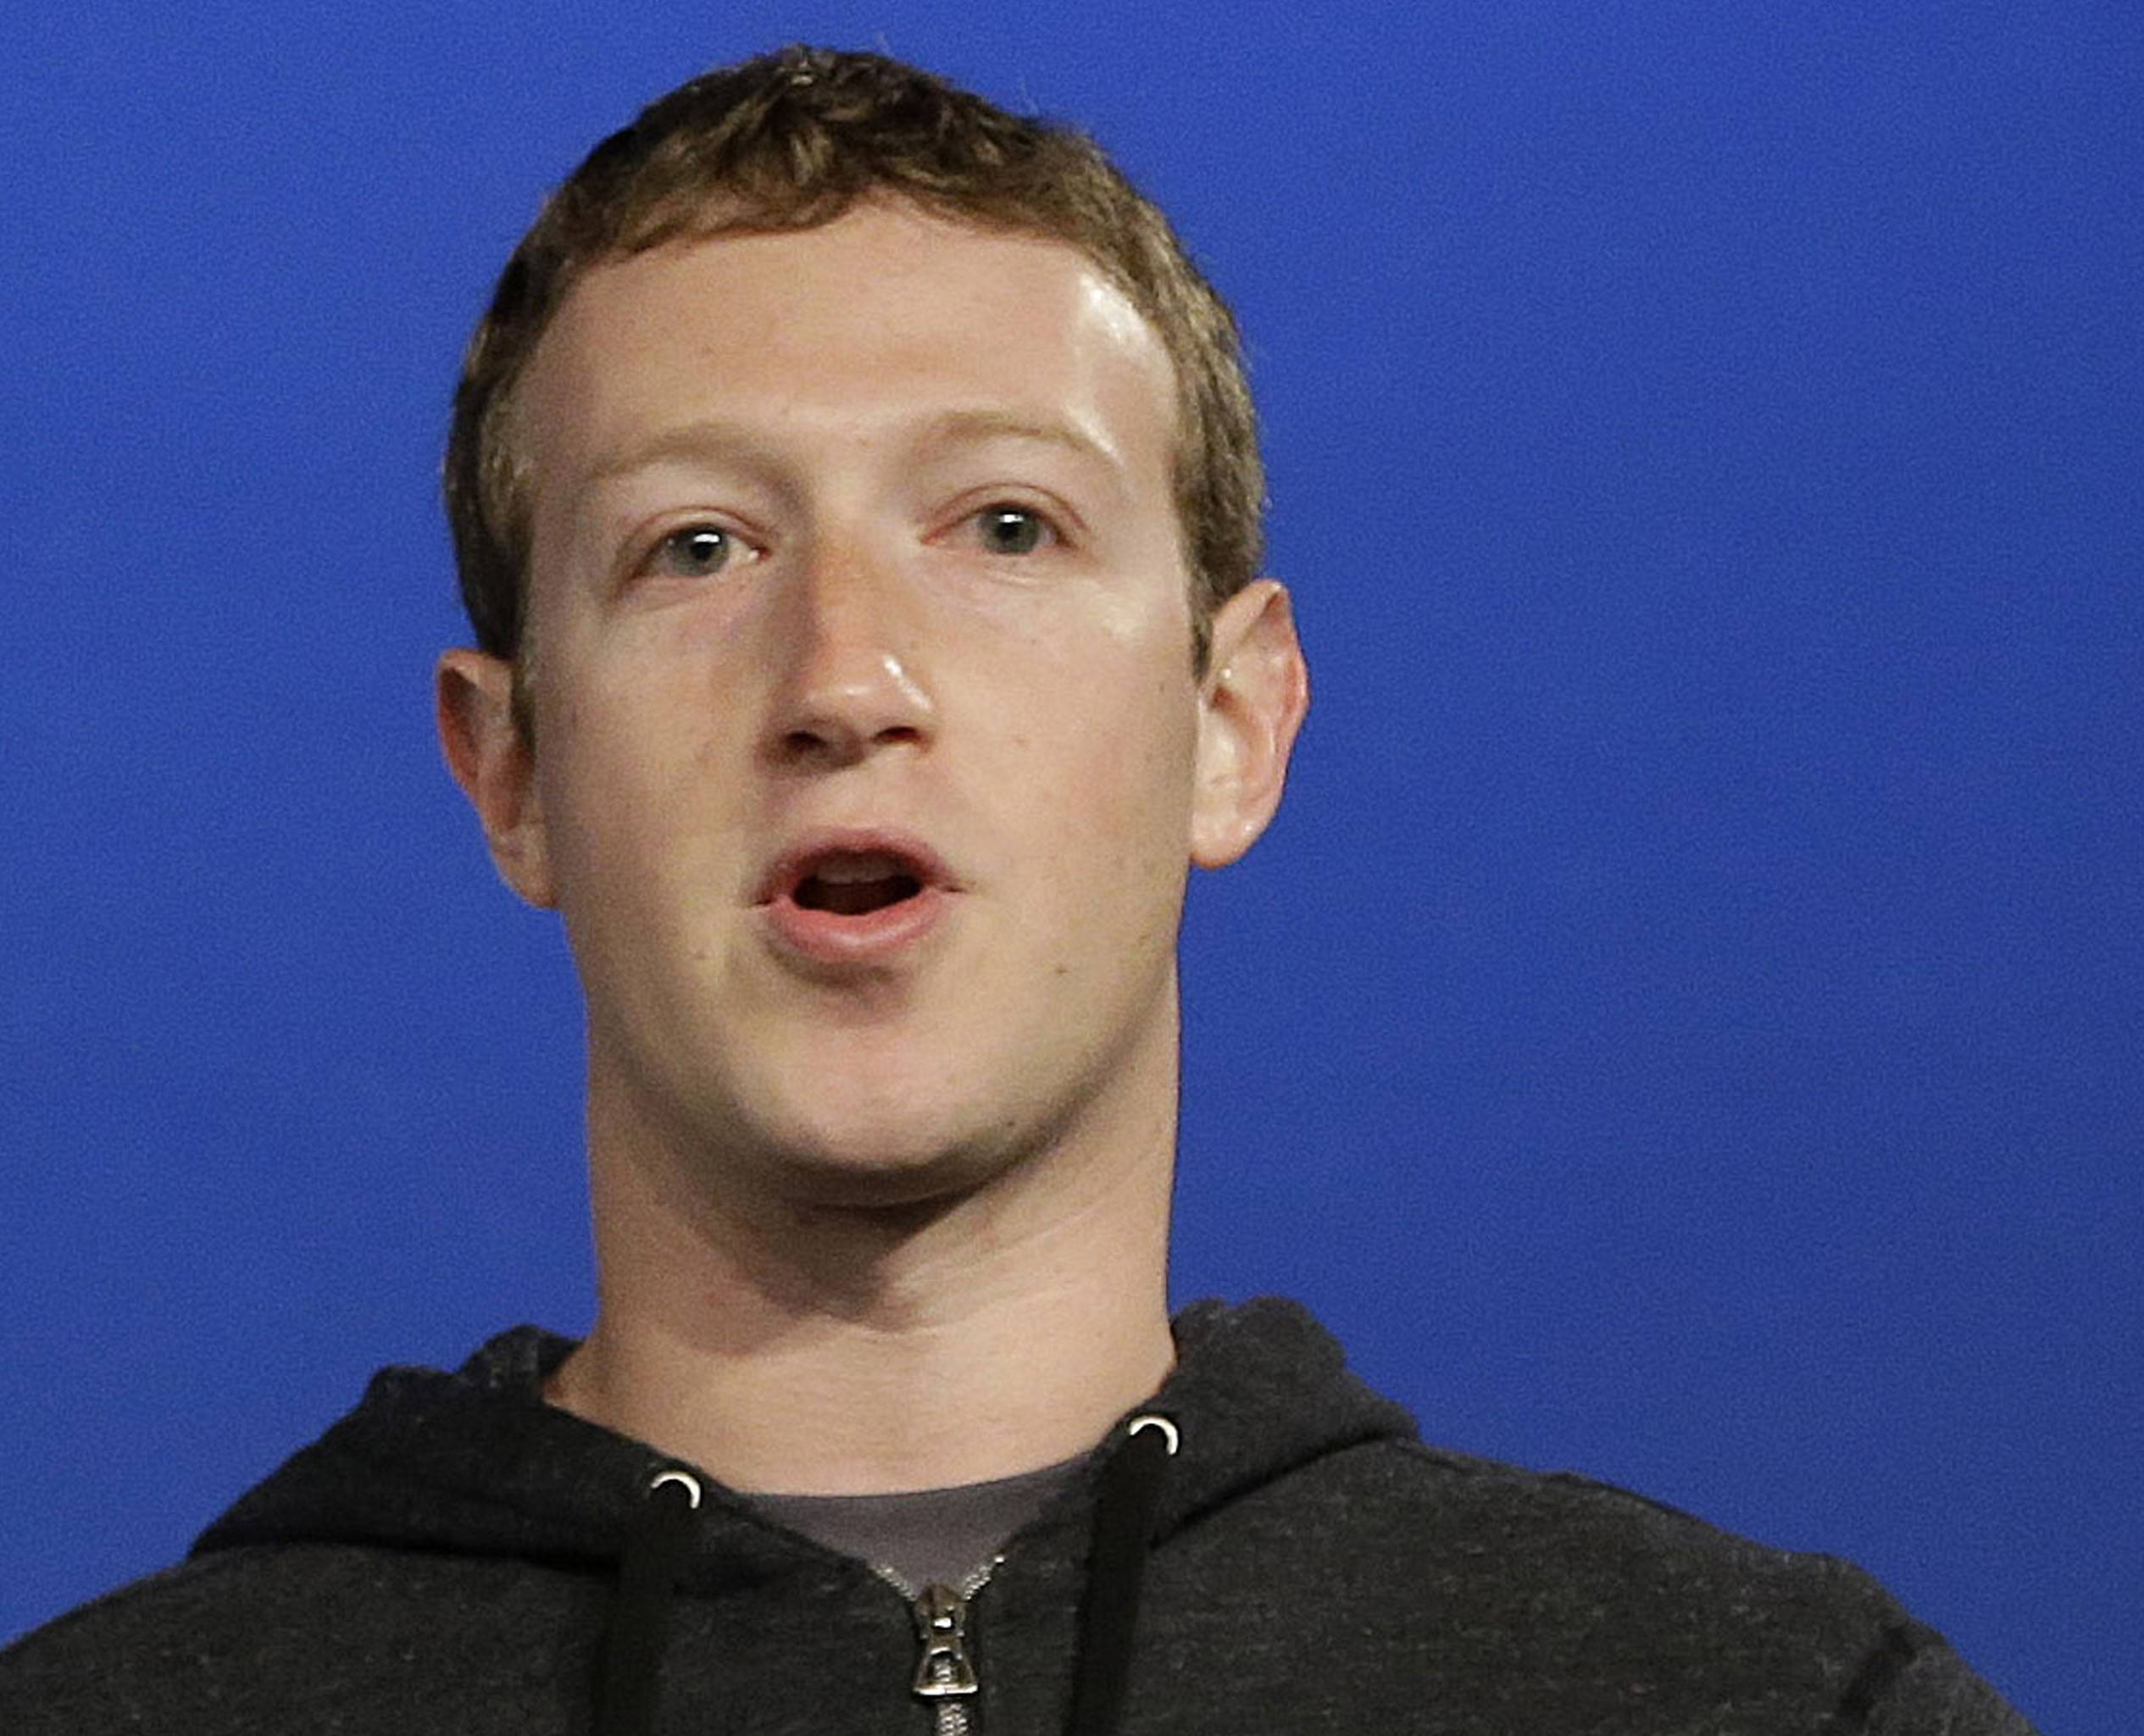 Facebook CEO Mark Zuckerberg reaped a $3.3 billion gain last year by exercising stock options.